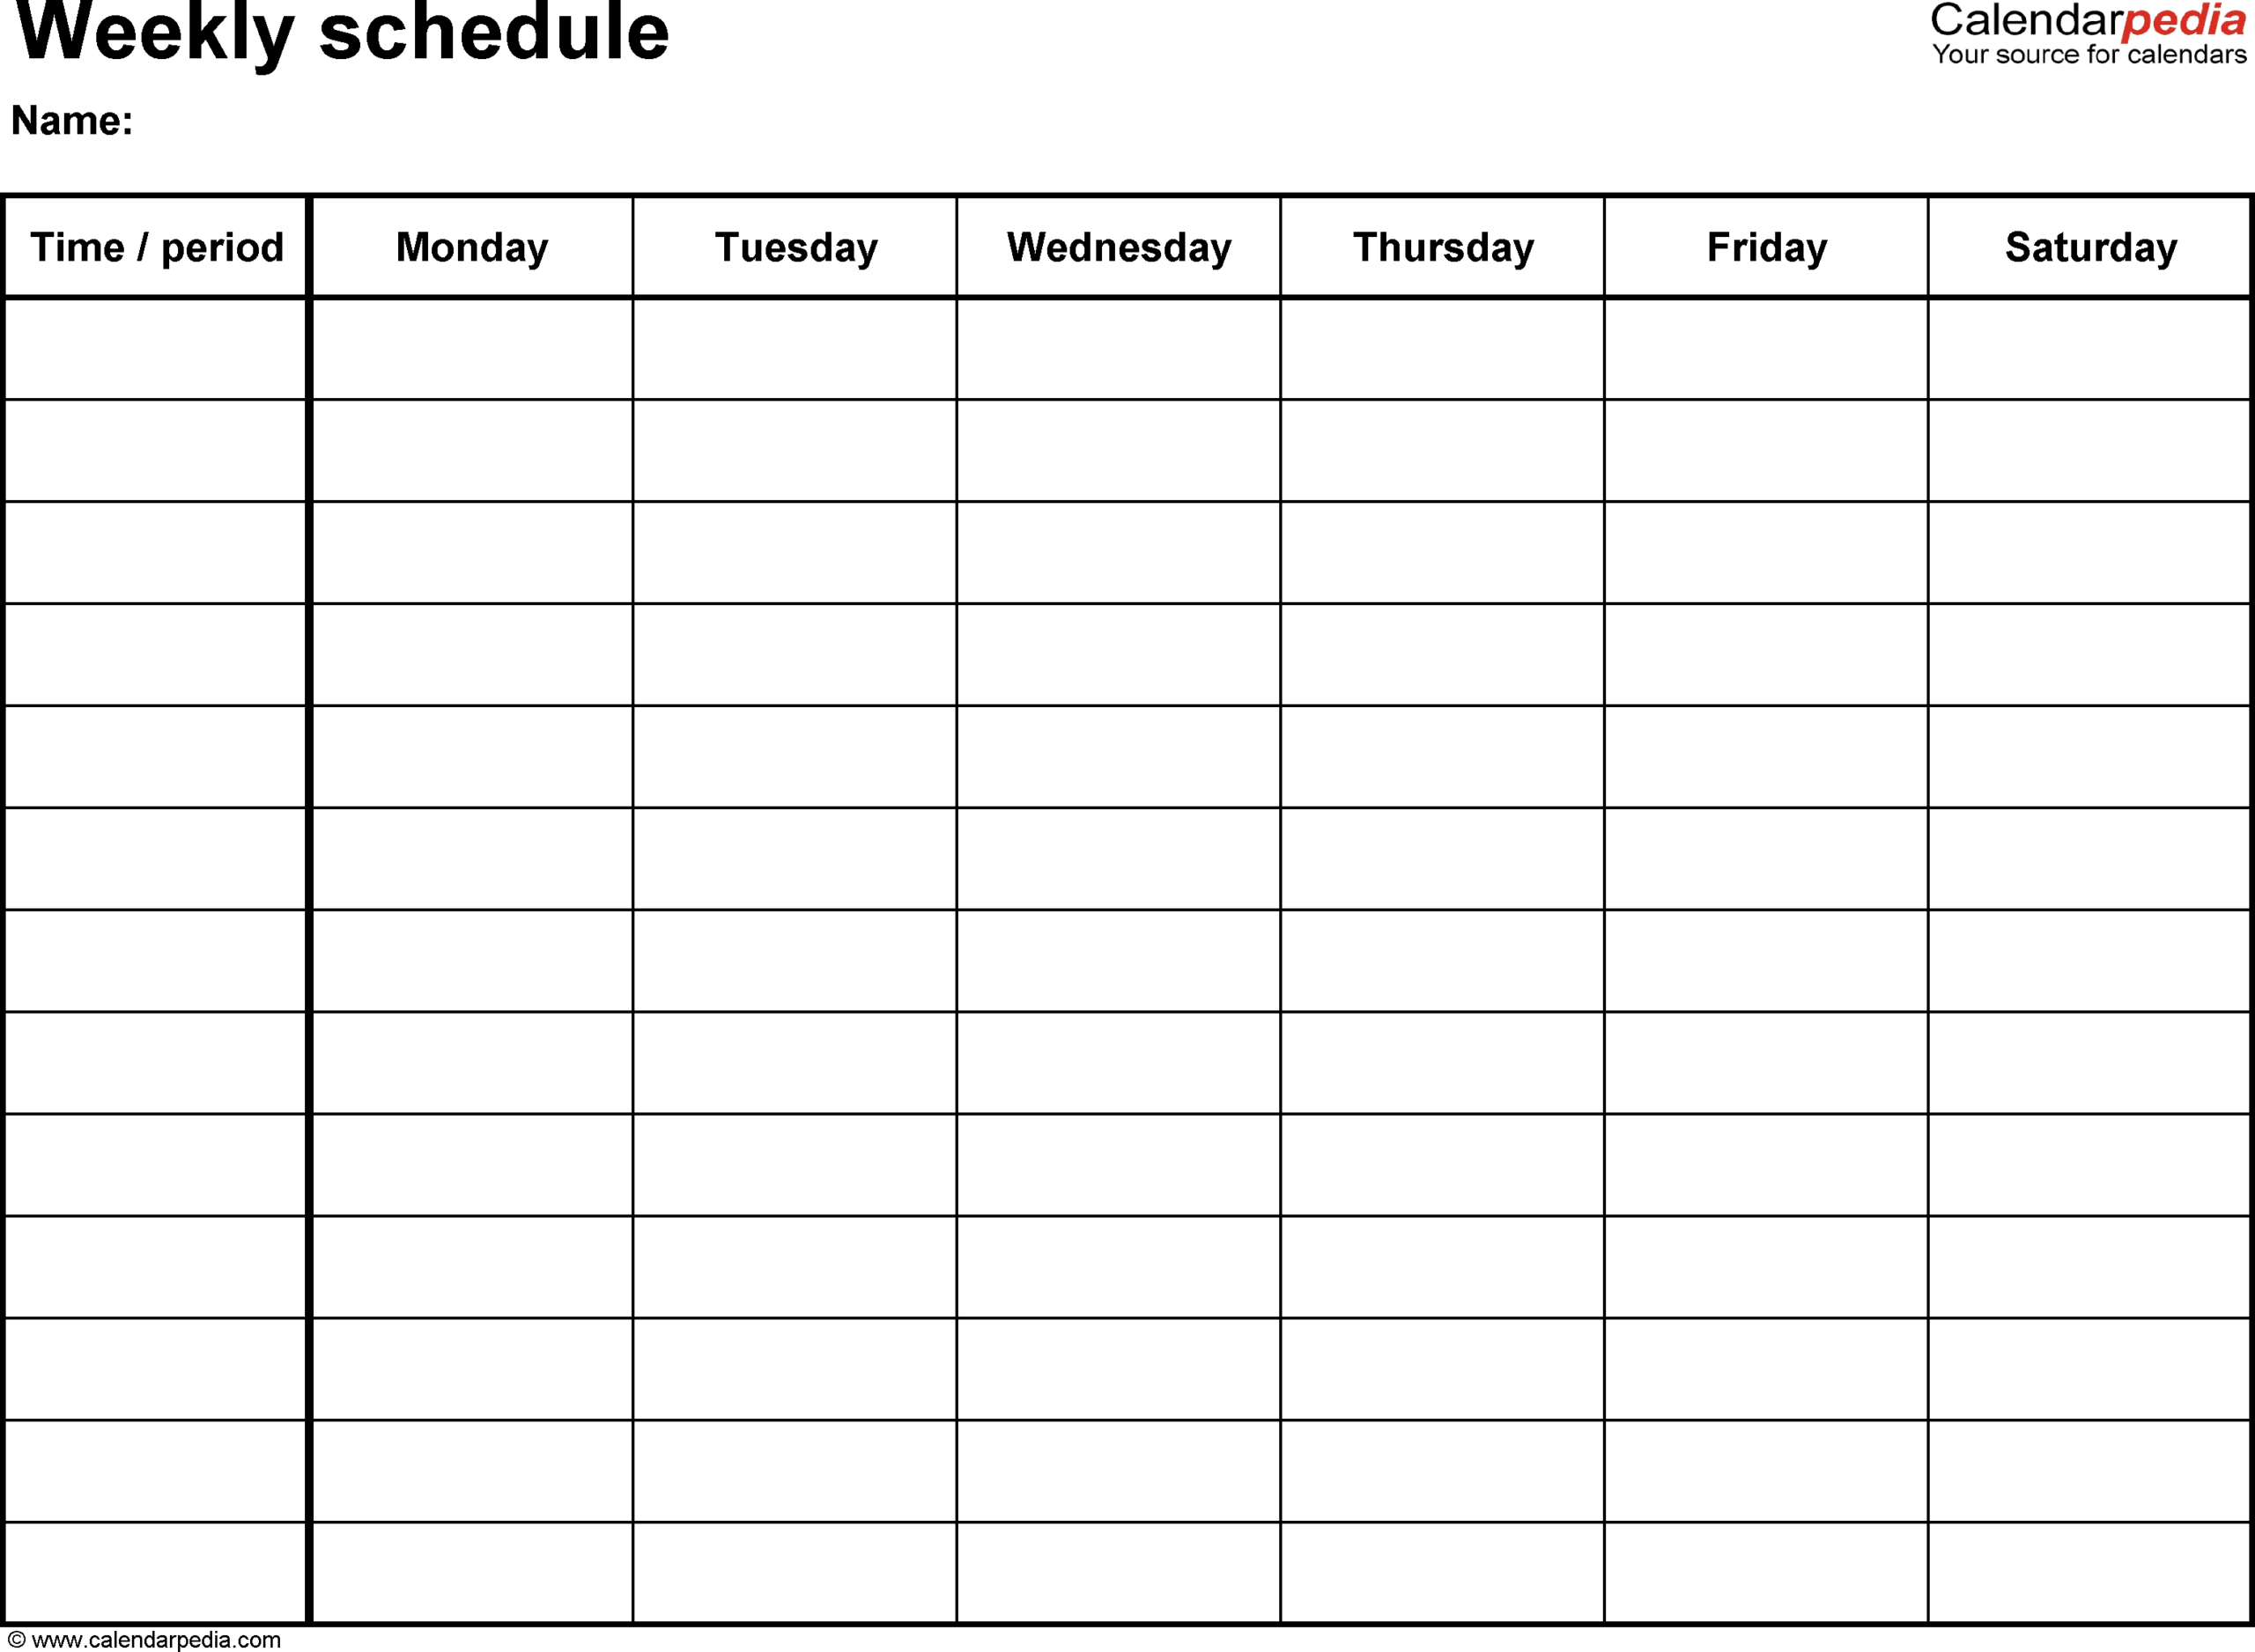 Calendar Fill In Templates | Calendar Template Printable throughout Calendar To Fill In